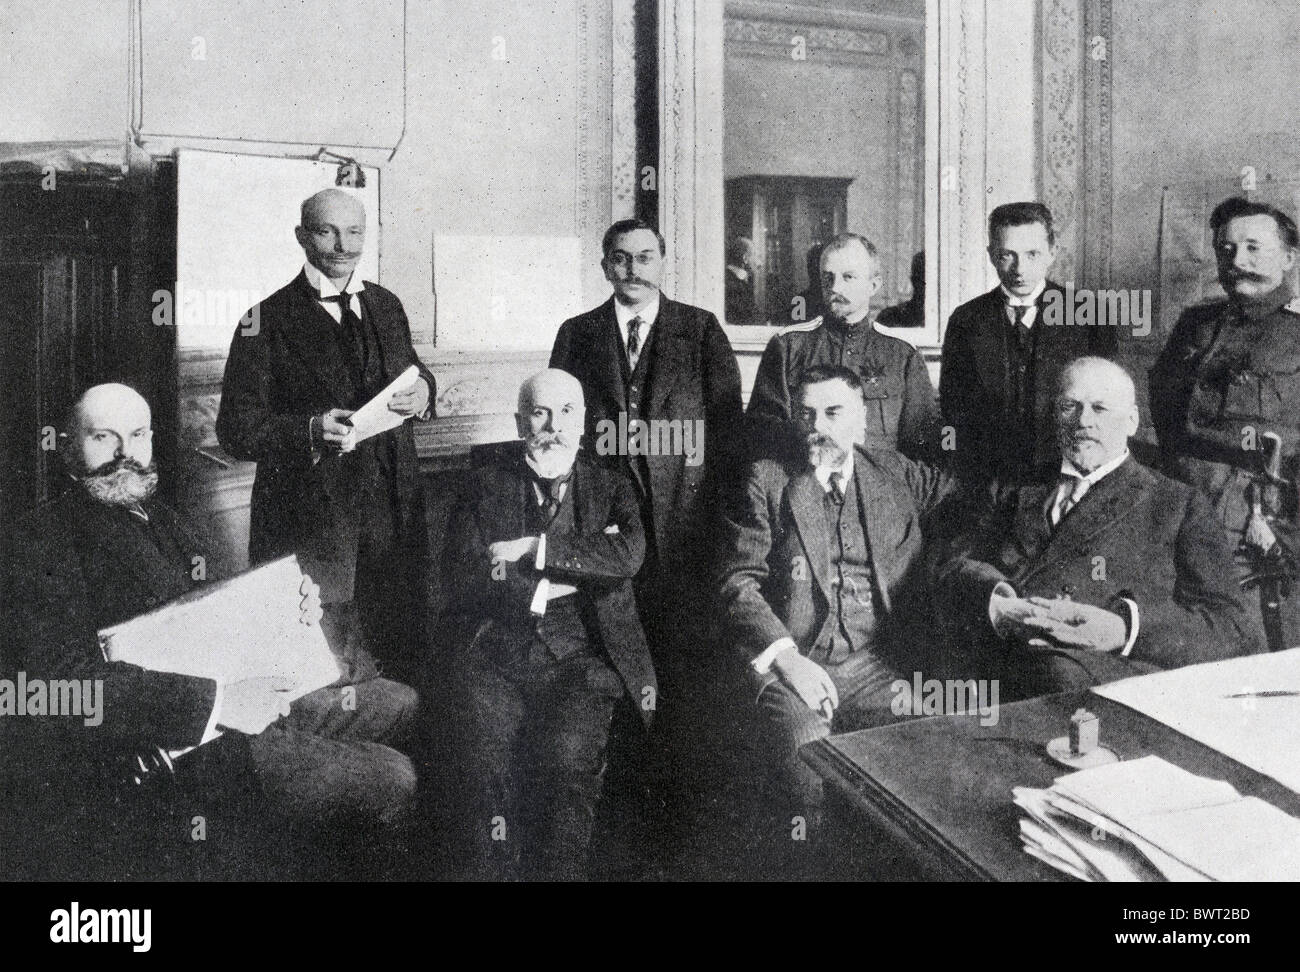 Mikhail Vladimirovich Rodzianko, 1859 - 1924, seated right, with other leaders of the Russian Revolution. - Stock Image